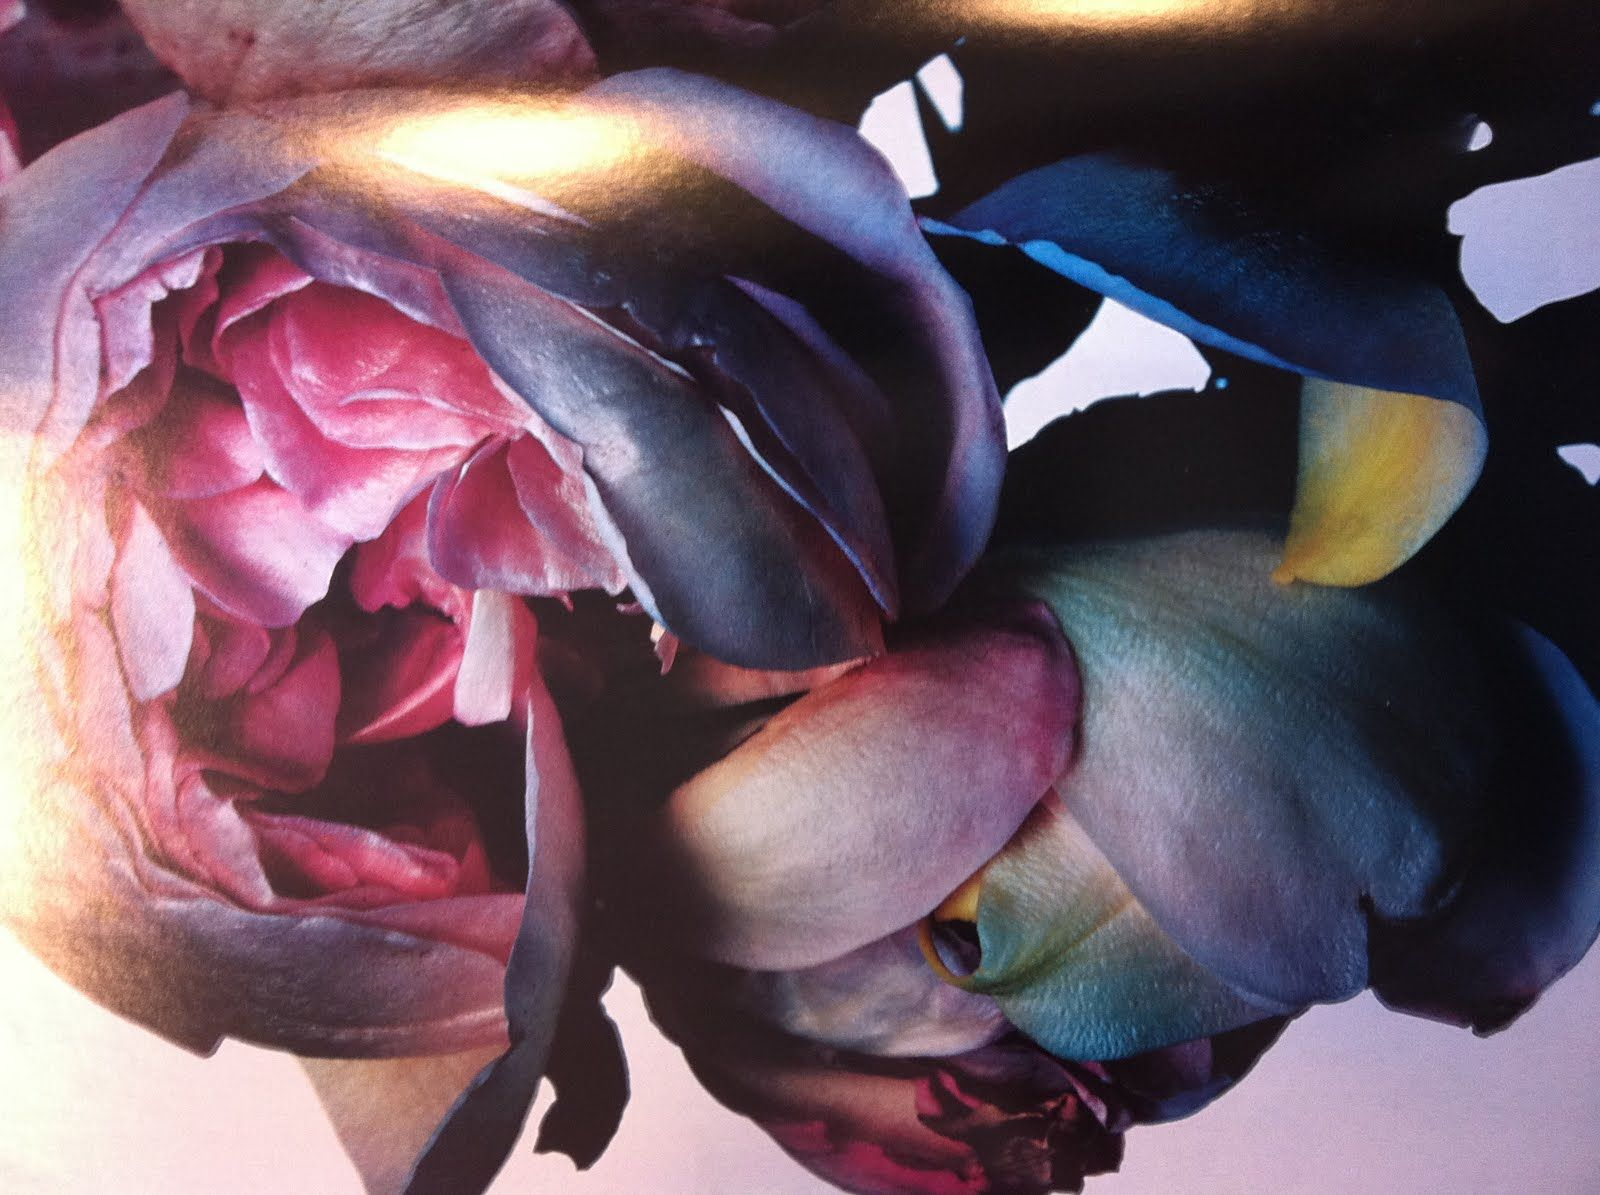 Rose 2003 by nick knight